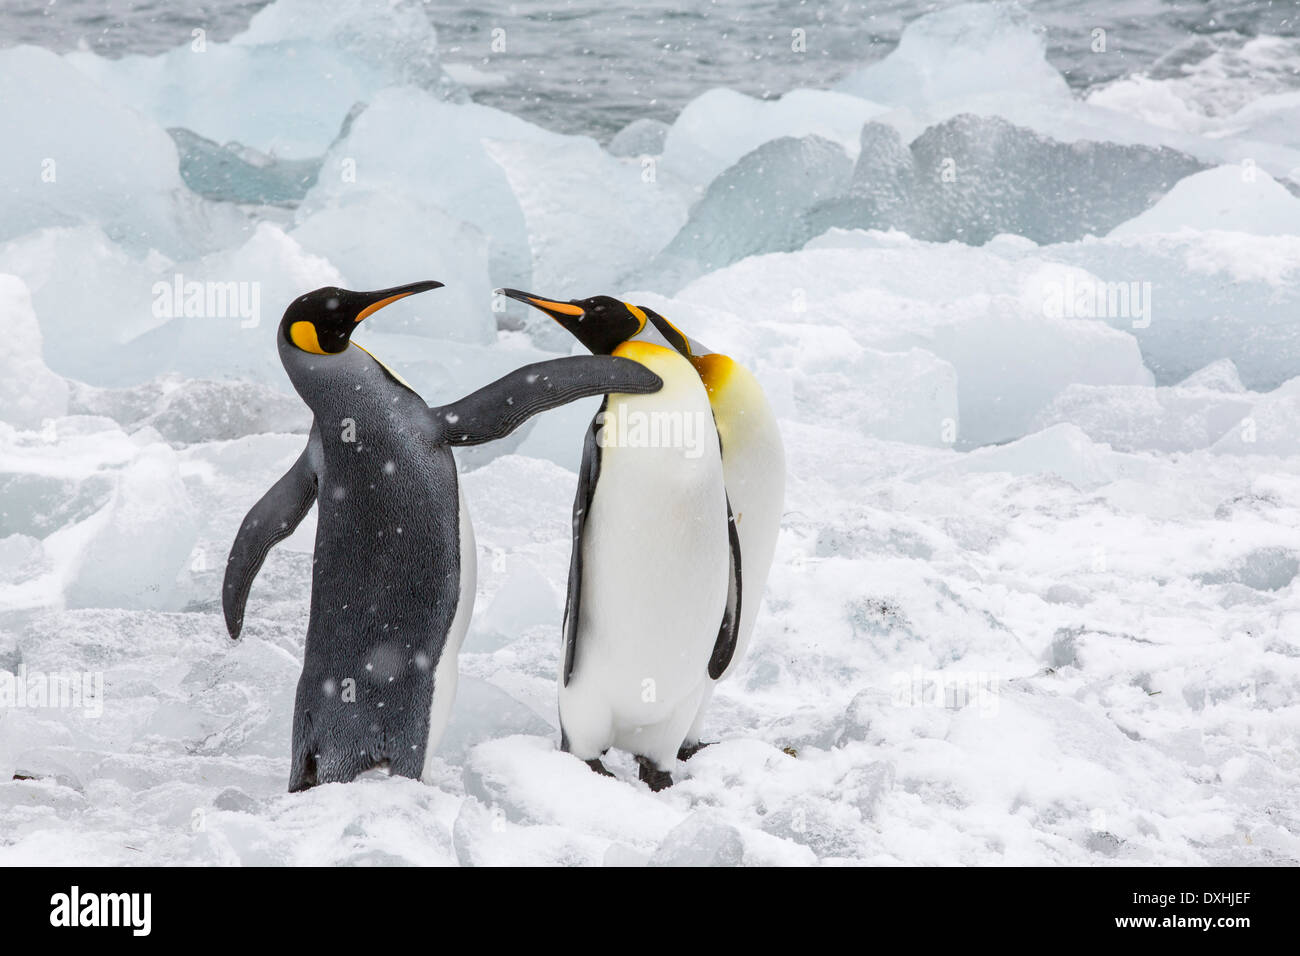 King Penguins flipper fighting at Gold Harbour, South Georgia, Southern Ocean. - Stock Image